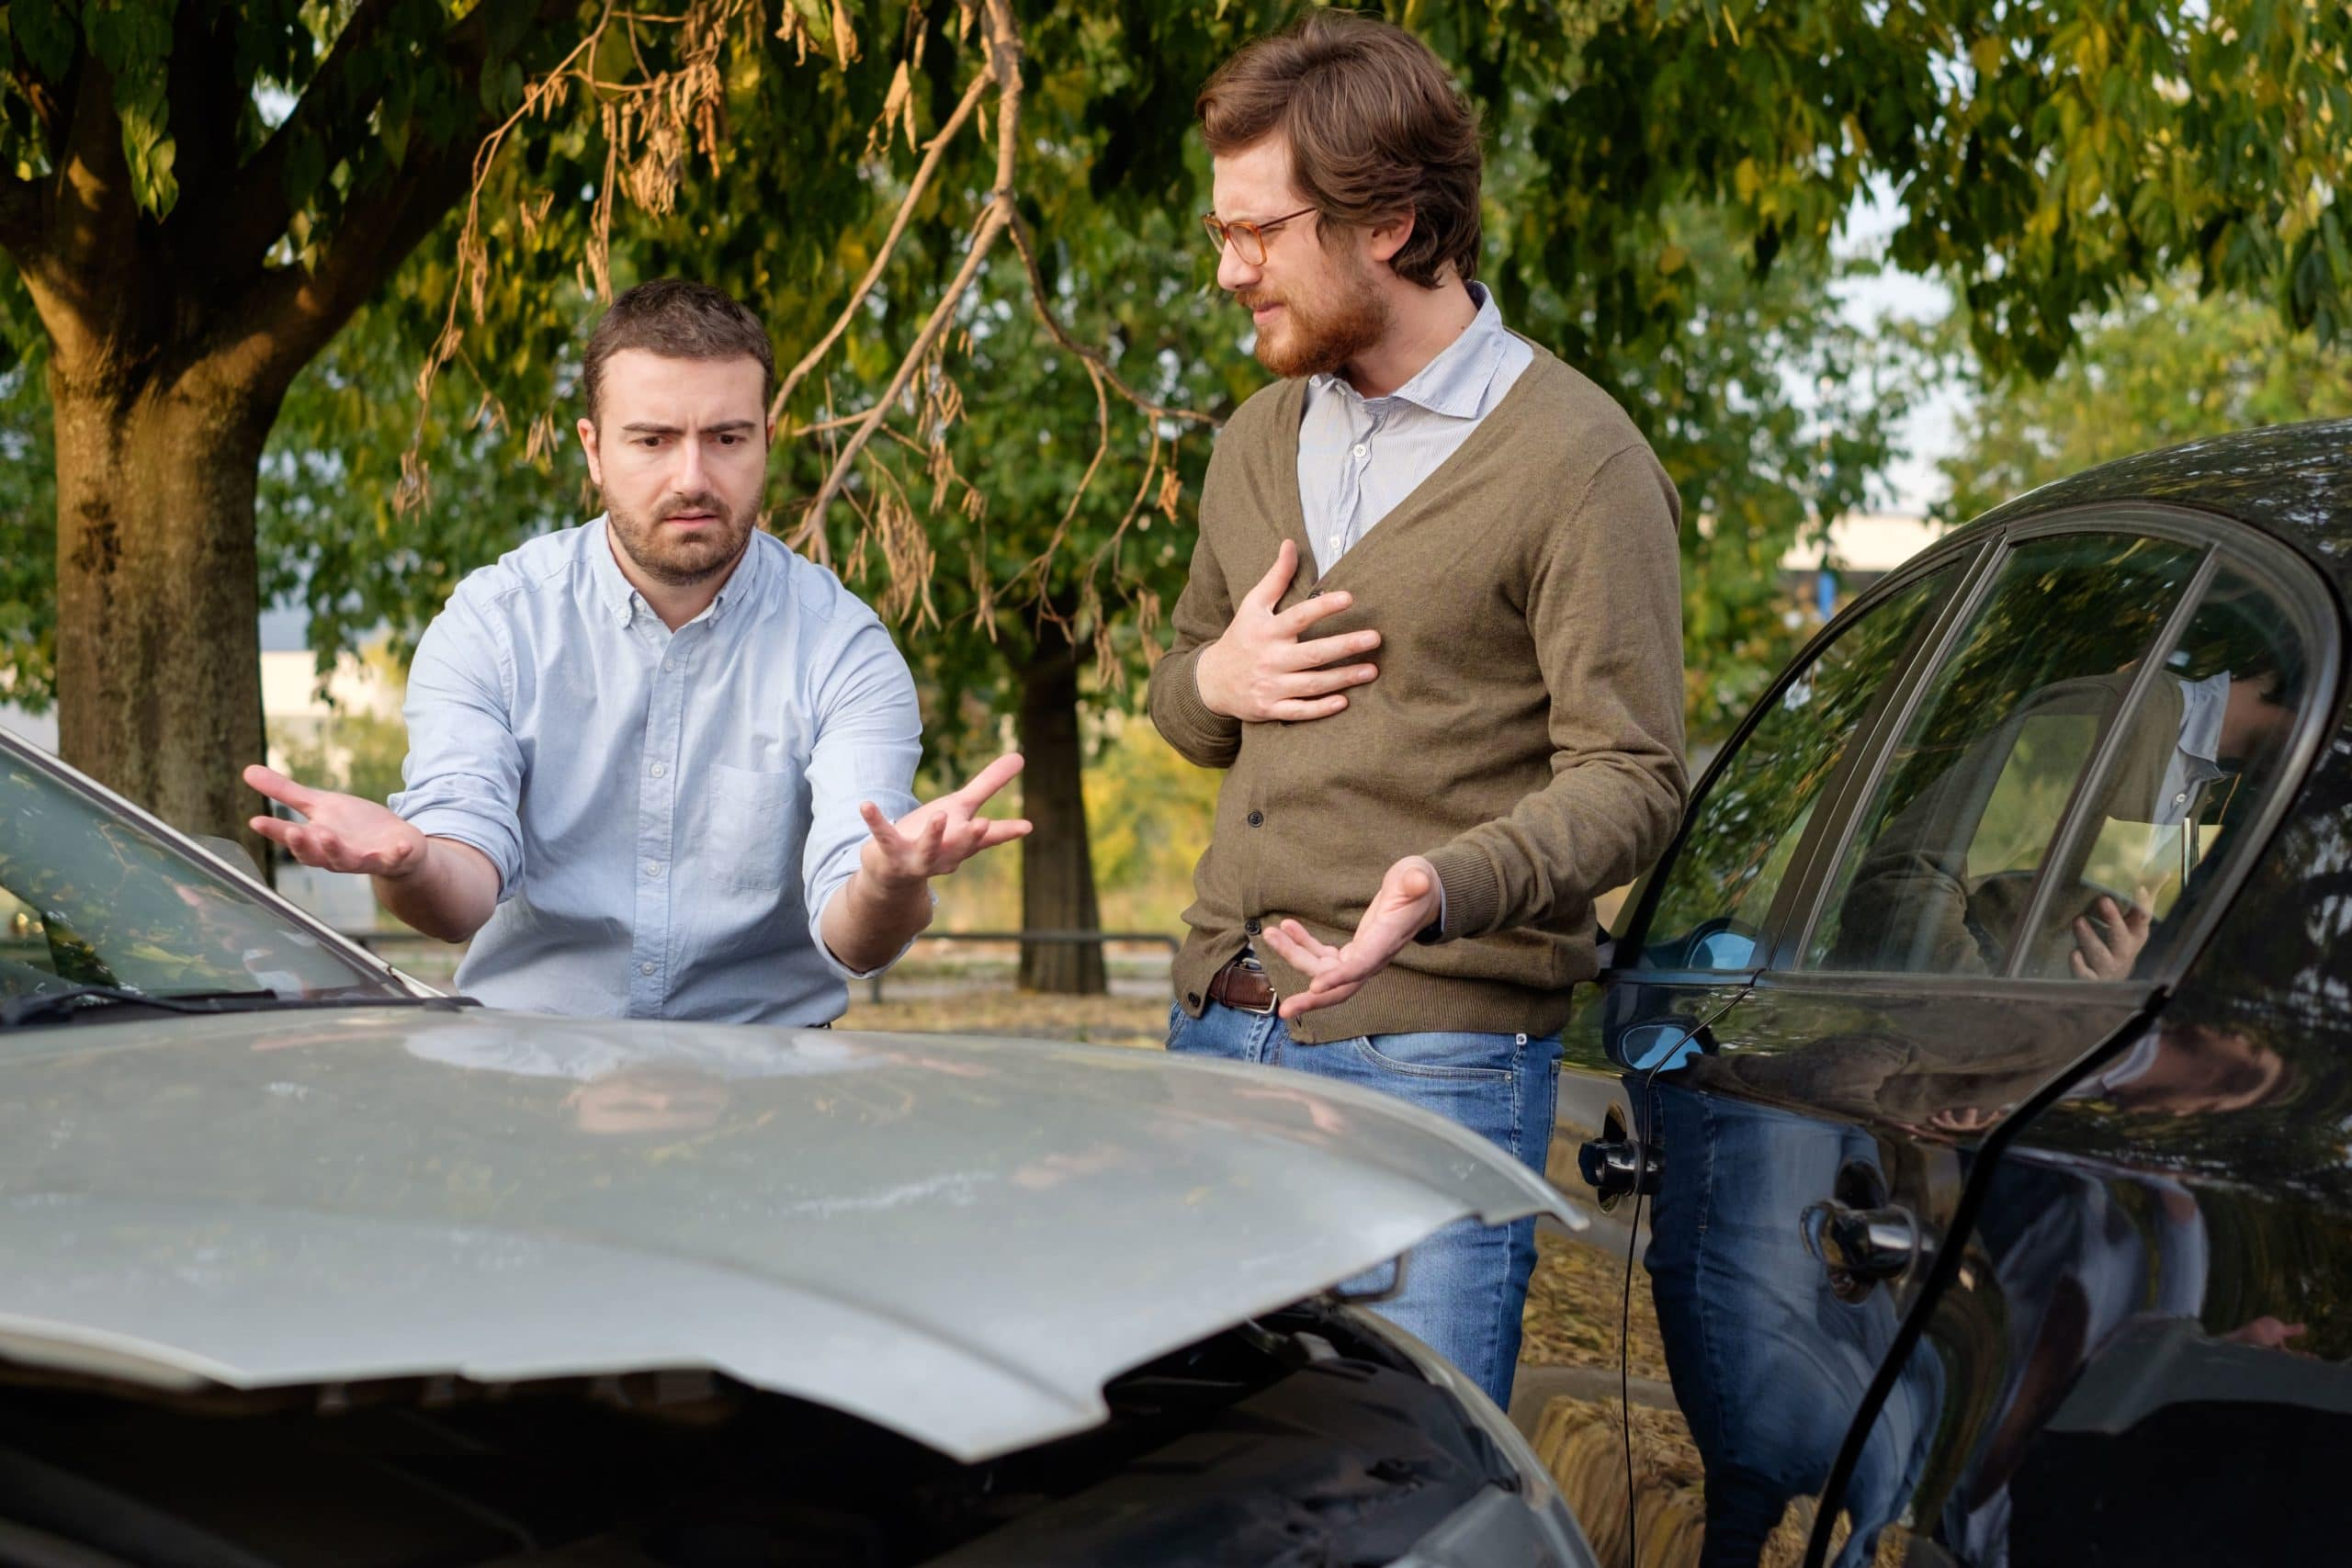 whos at fault in a car accident in california?